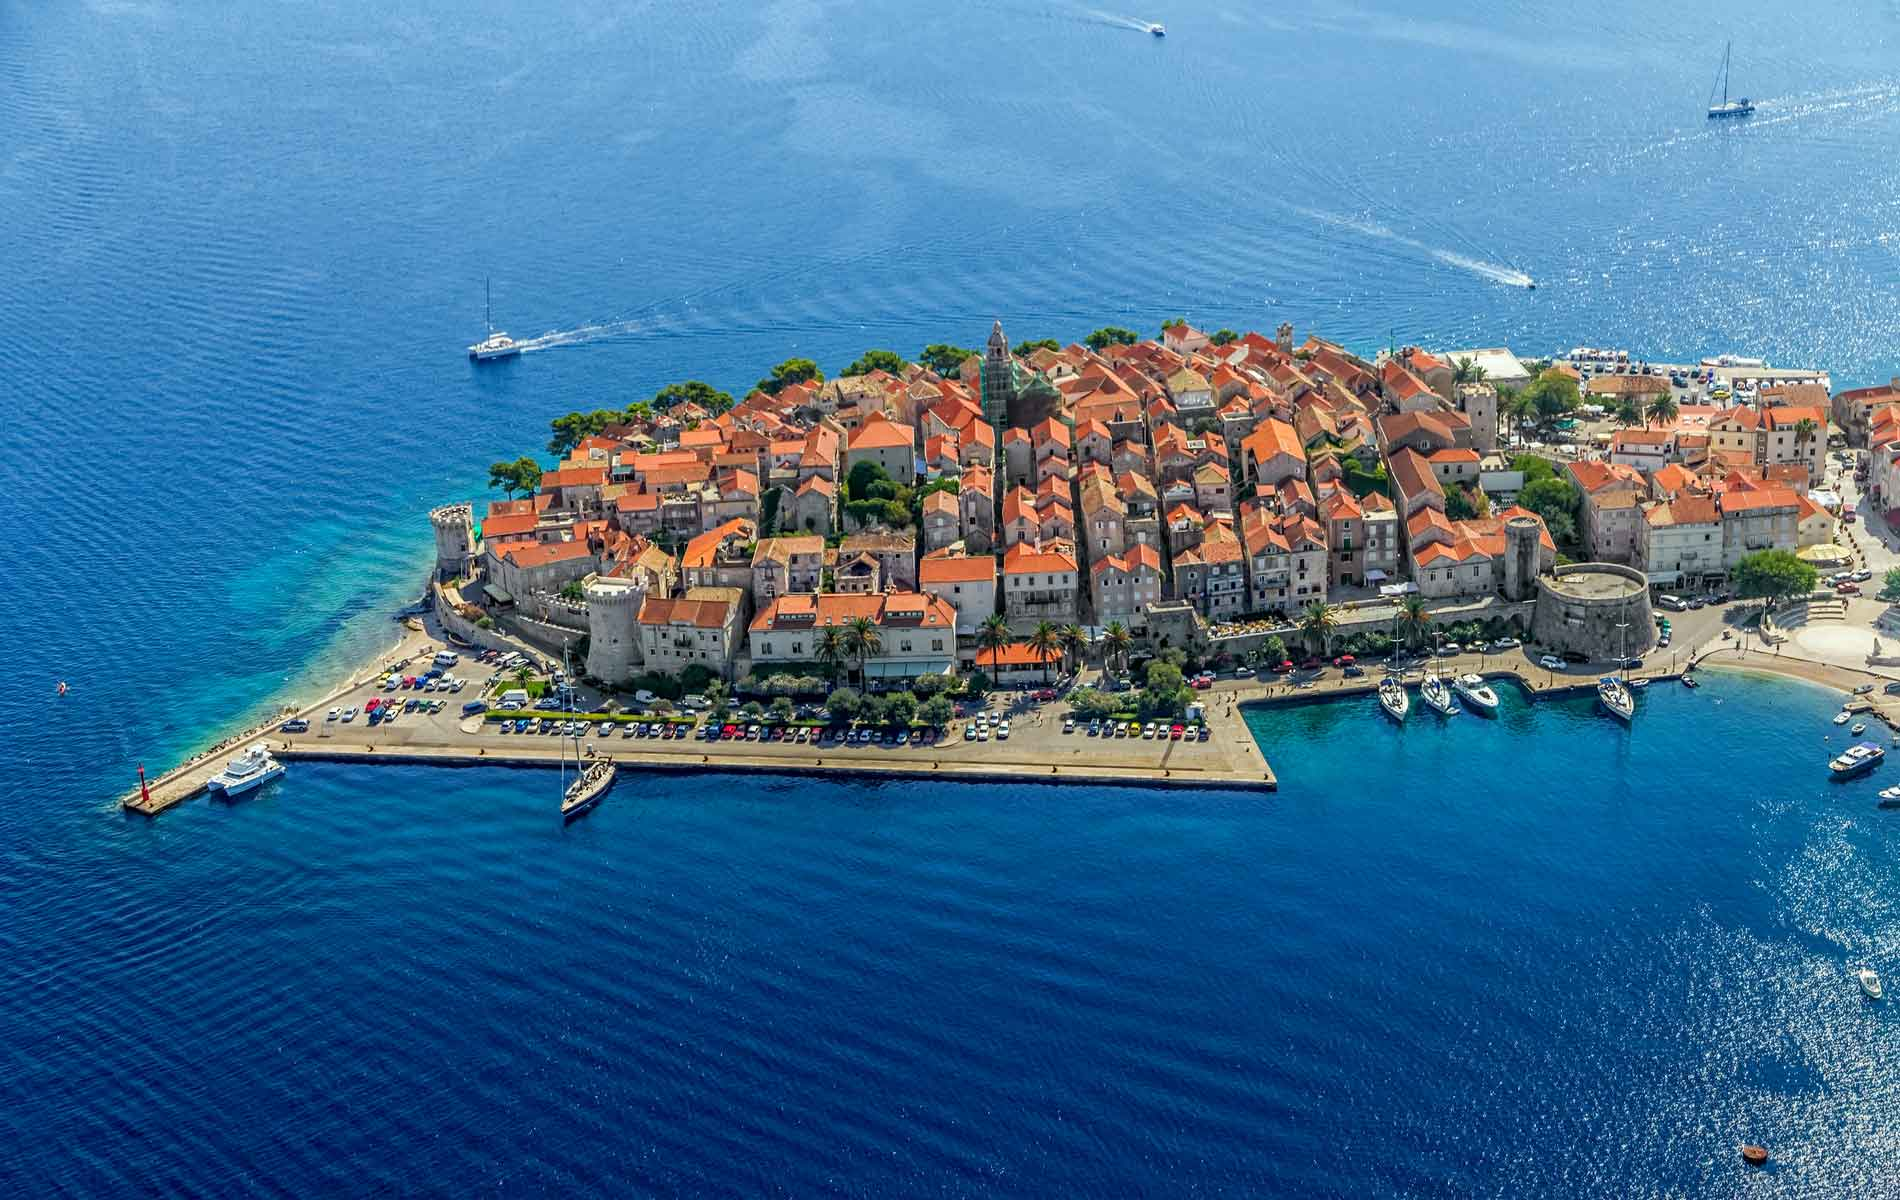 Aerial shot of Korcula's old town